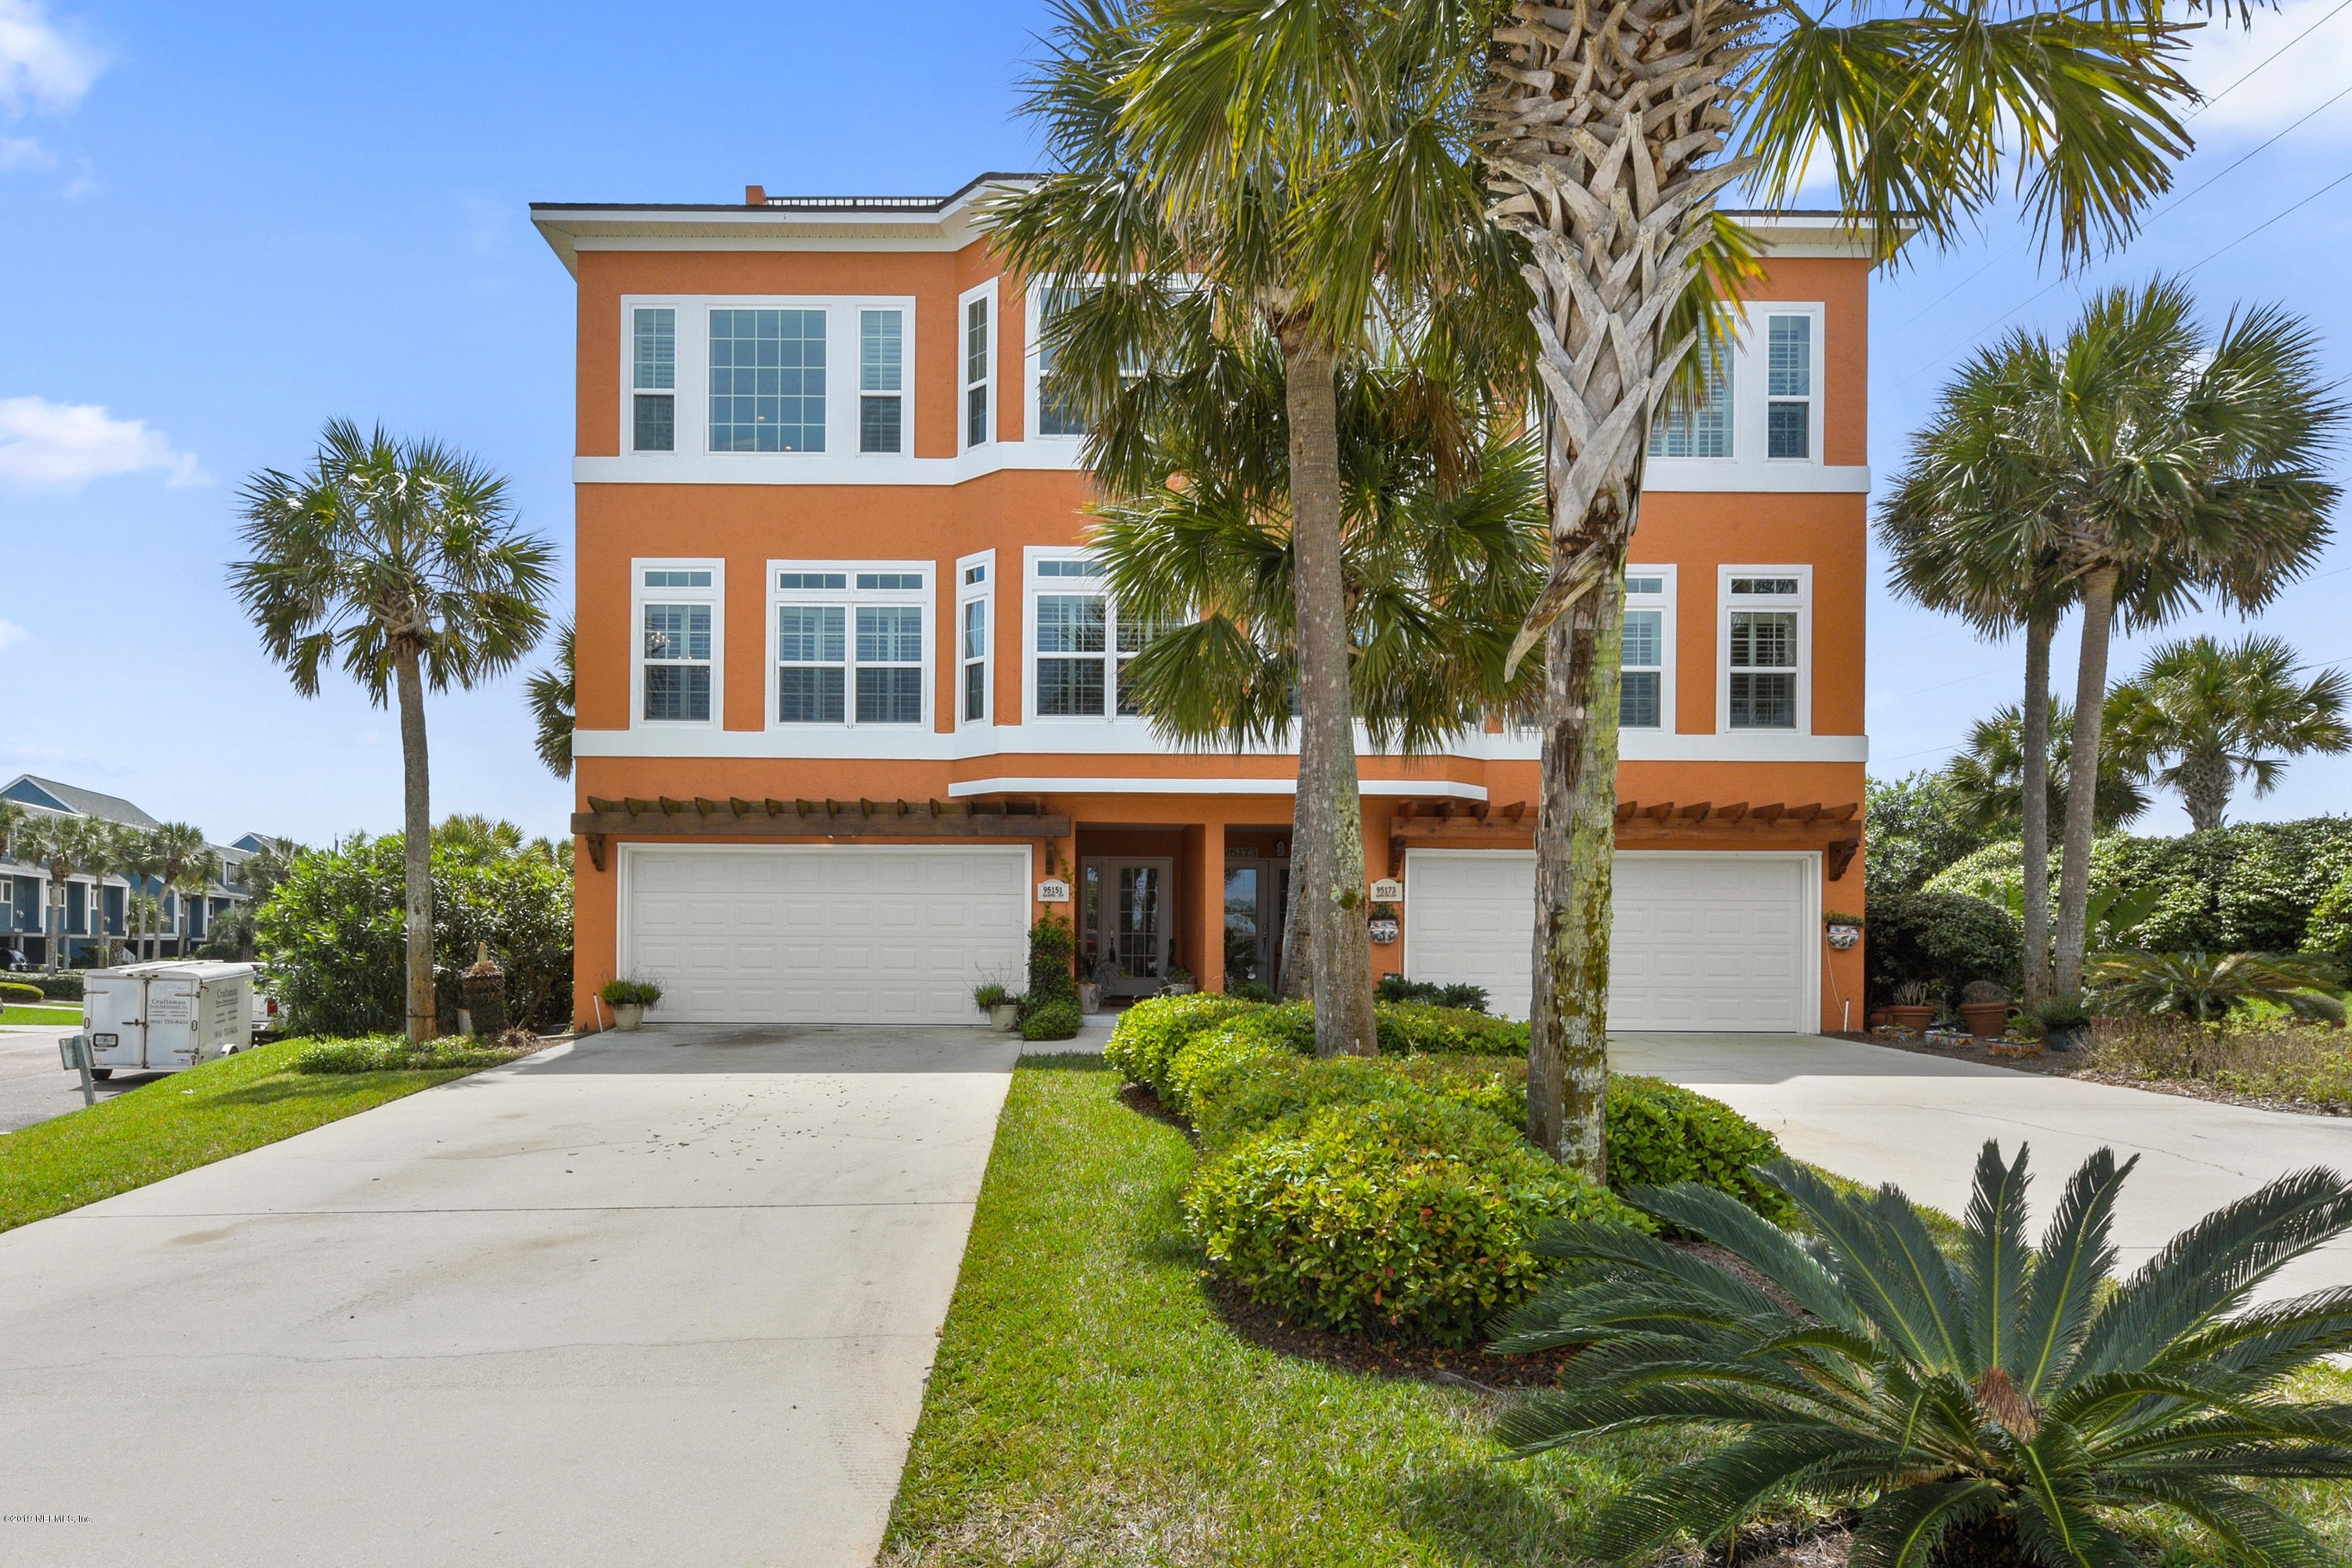 95151 SANDPIPER, FERNANDINA BEACH, FLORIDA 32034, 5 Bedrooms Bedrooms, ,4 BathroomsBathrooms,Residential - single family,For sale,SANDPIPER,989591